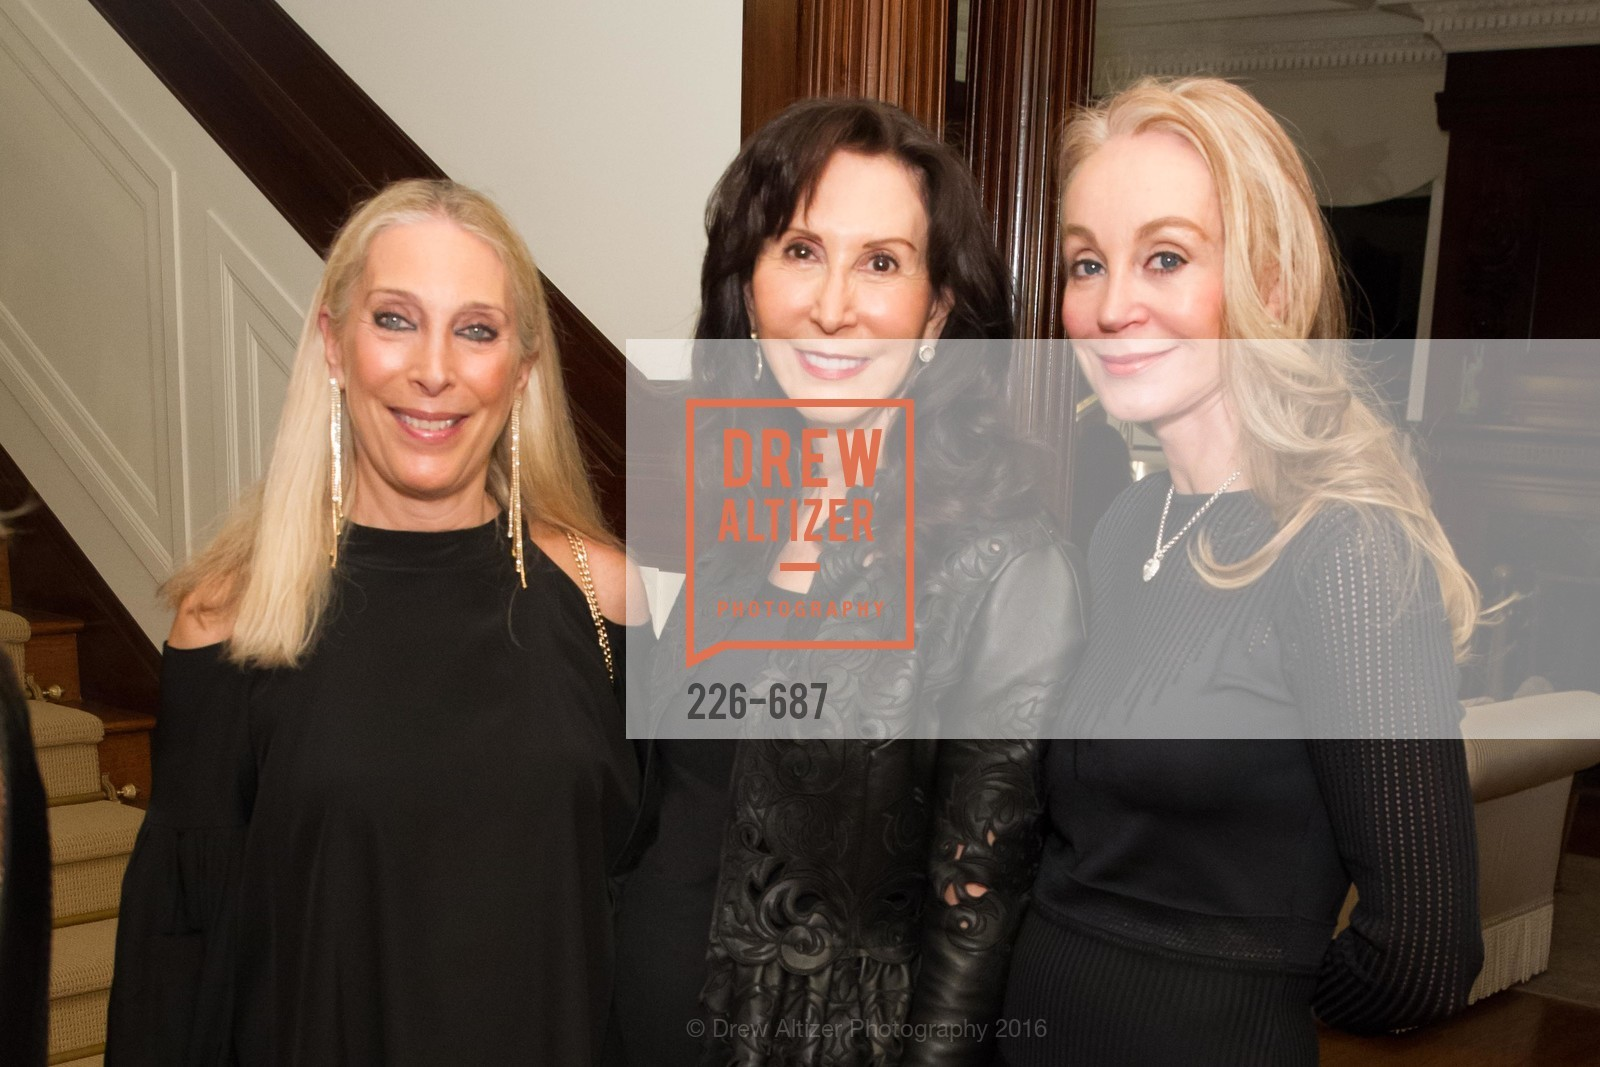 Betsy Linder, Carolyn Chandler, Giselle Parry, Benefactor Party for the 2016 Ballet Gala, Private Residence, January 14th, 2016,Drew Altizer, Drew Altizer Photography, full-service agency, private events, San Francisco photographer, photographer california